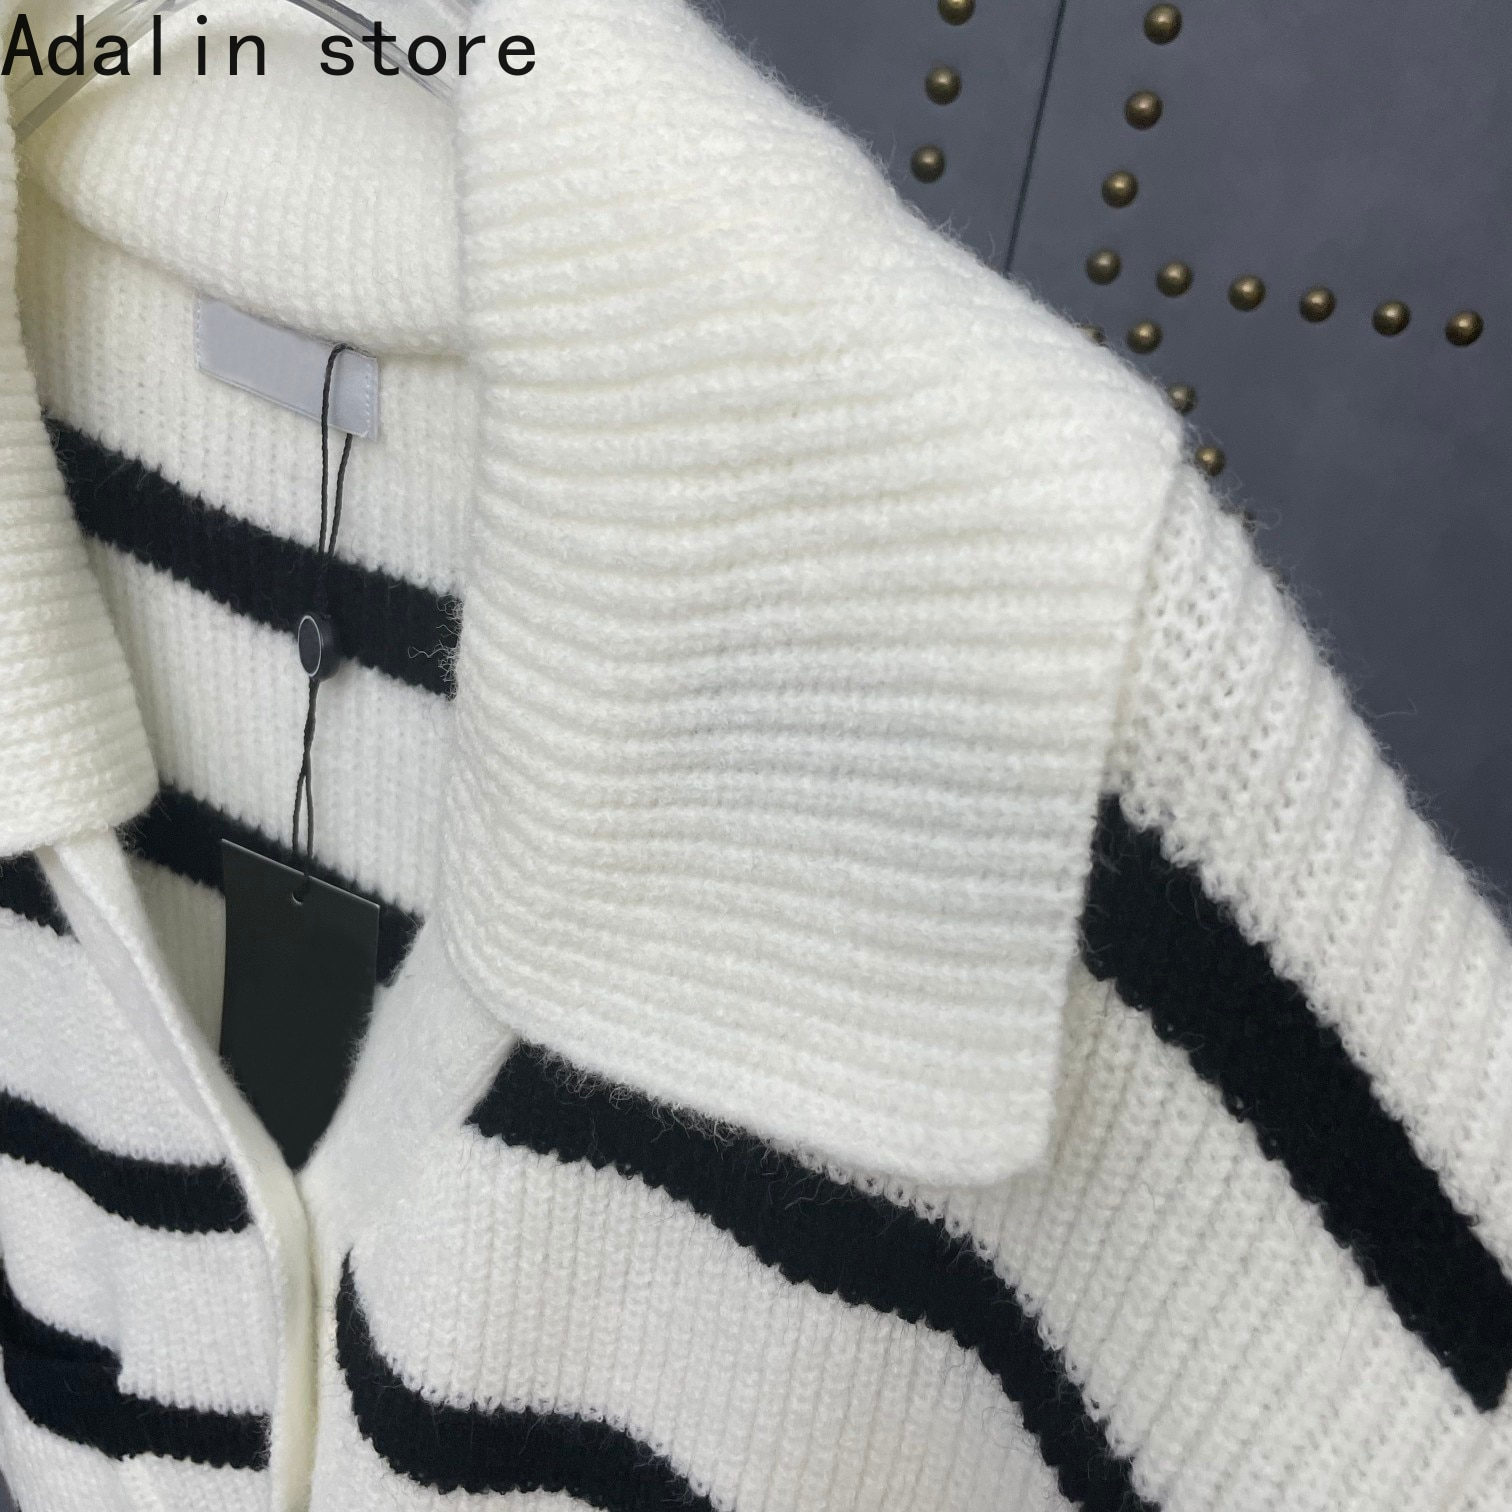 2021 high quality autumn and winter new fashion women's contrast striped long sleeved cardigan simple single breasted coat enlarge